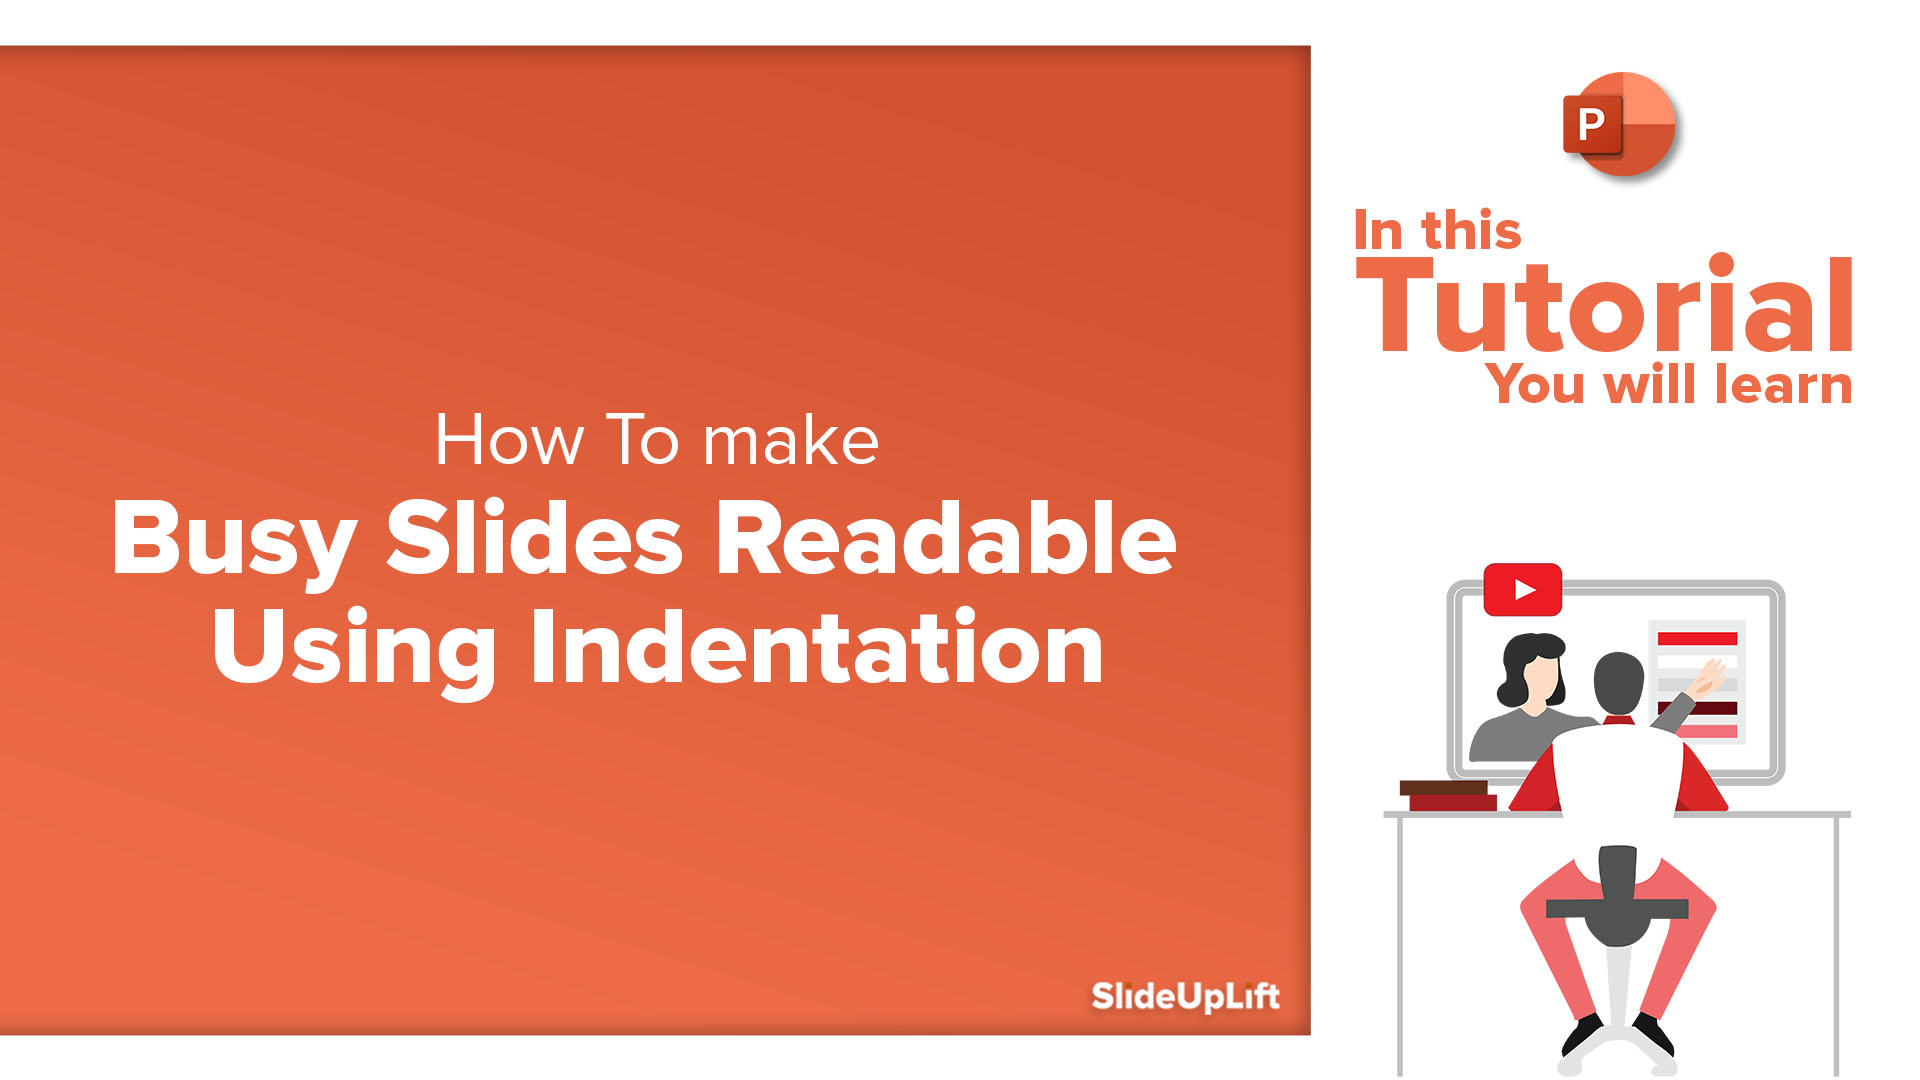 How To Make Busy Slides Readable Using Indentation | PowerPoint Tutorial